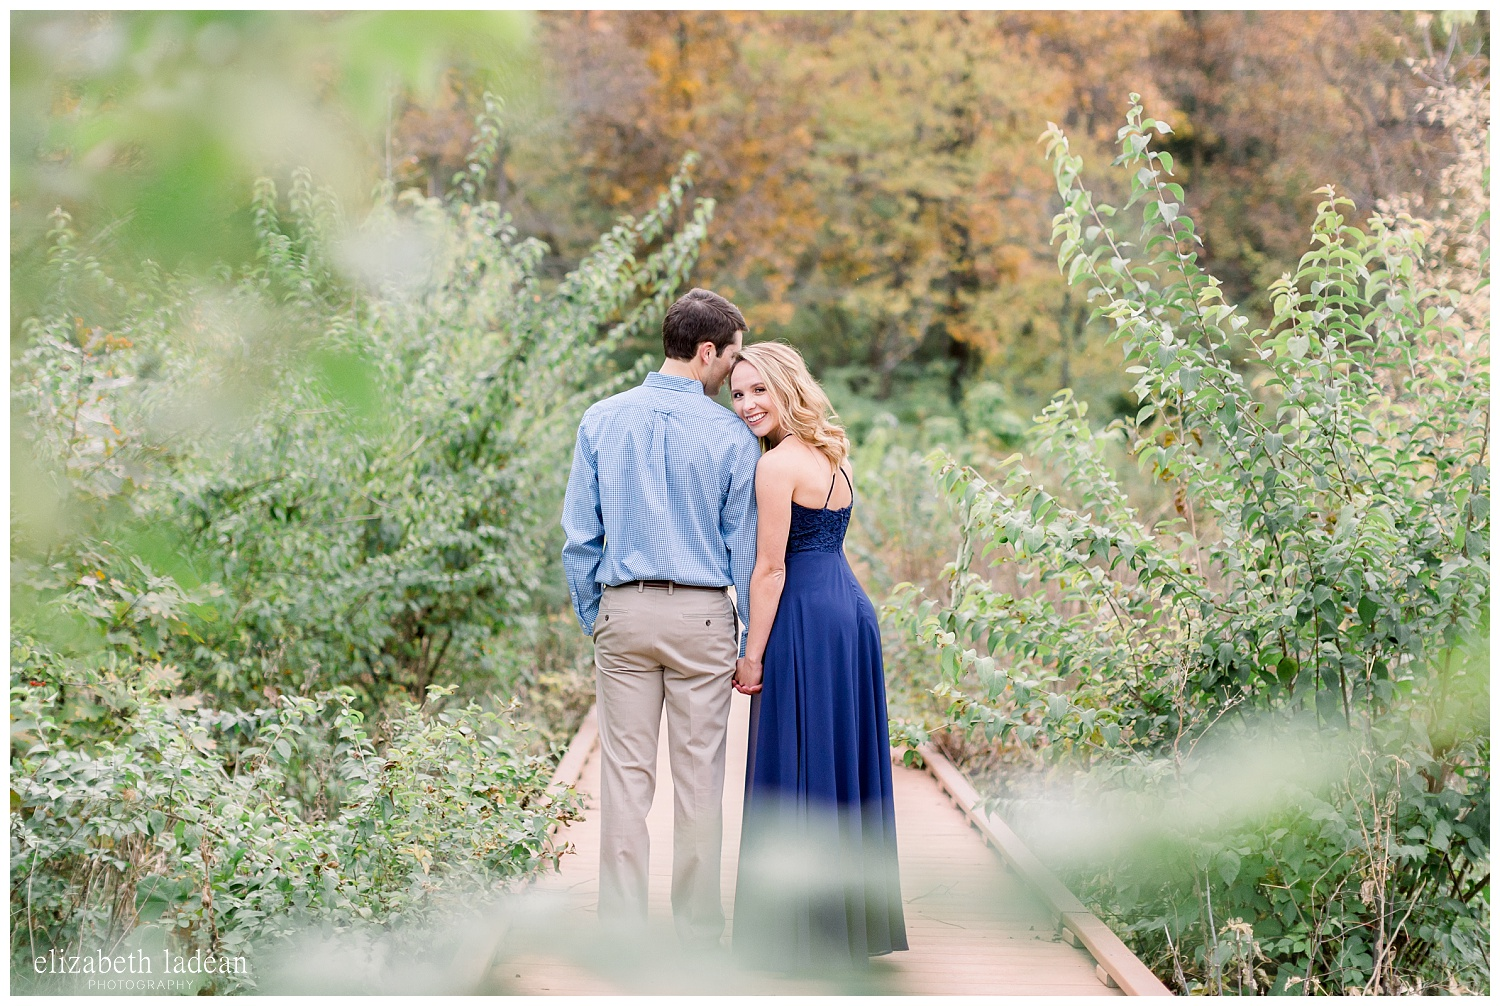 Colorful-Fall-Engagement-Photos-in-KC-C+B-2018-elizabeth-ladean-photography-photo_1804.jpg